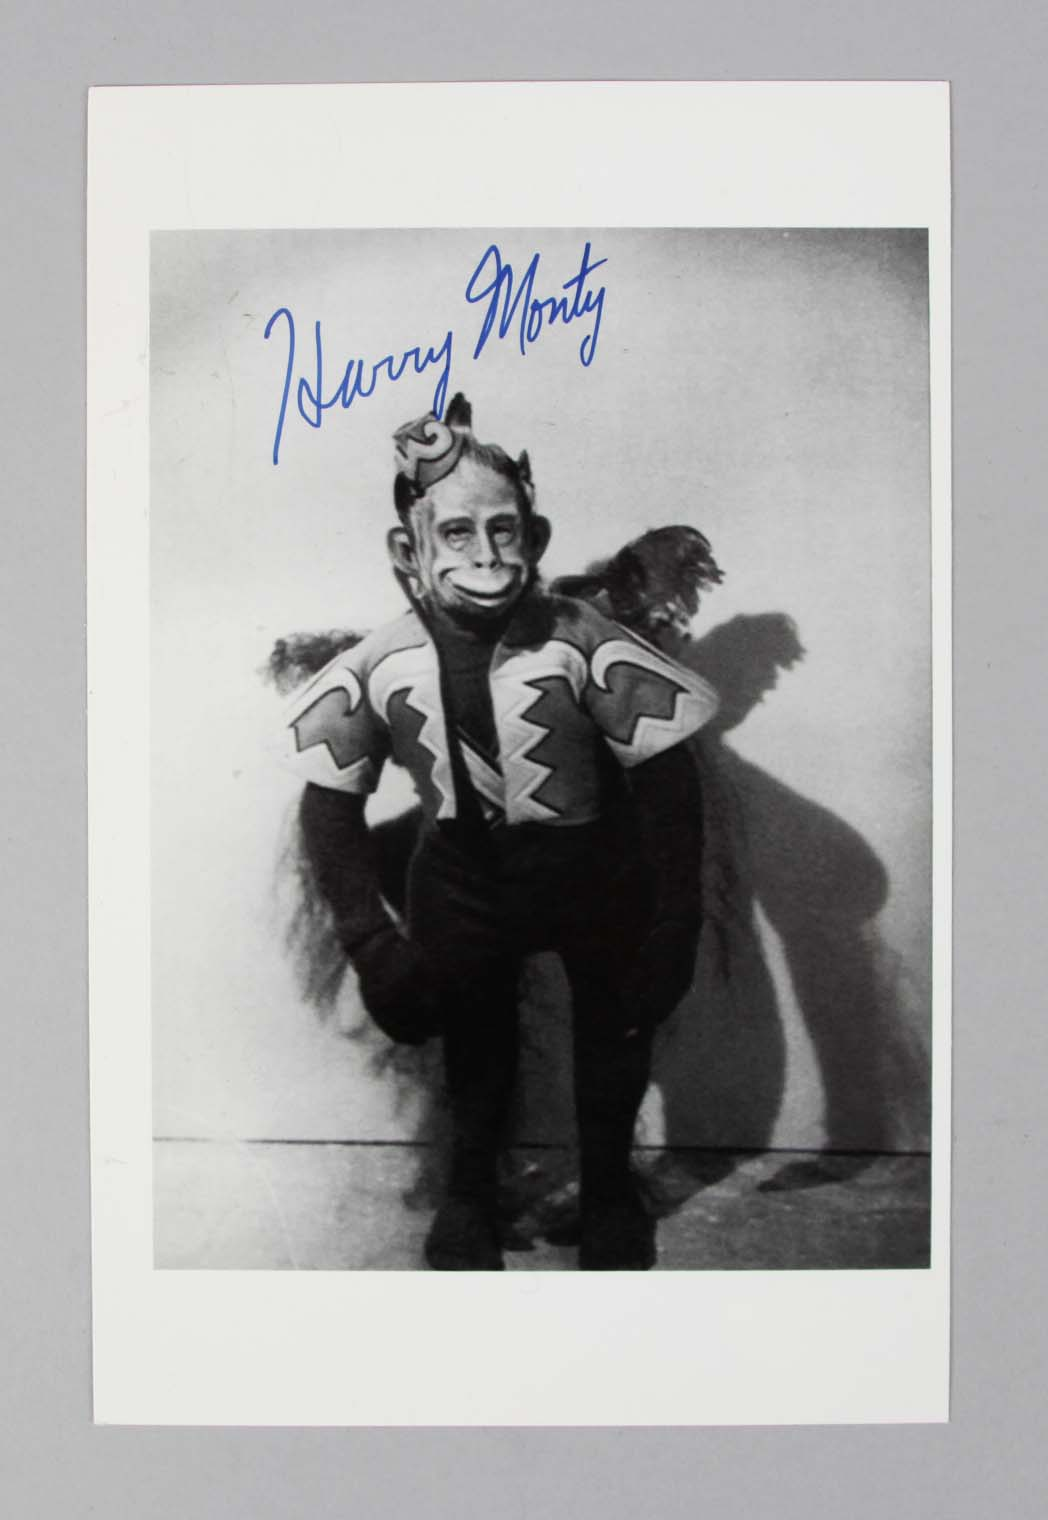 Wizard of Oz - Harry Monty Signed 5x8 BW Photo - COA JSA